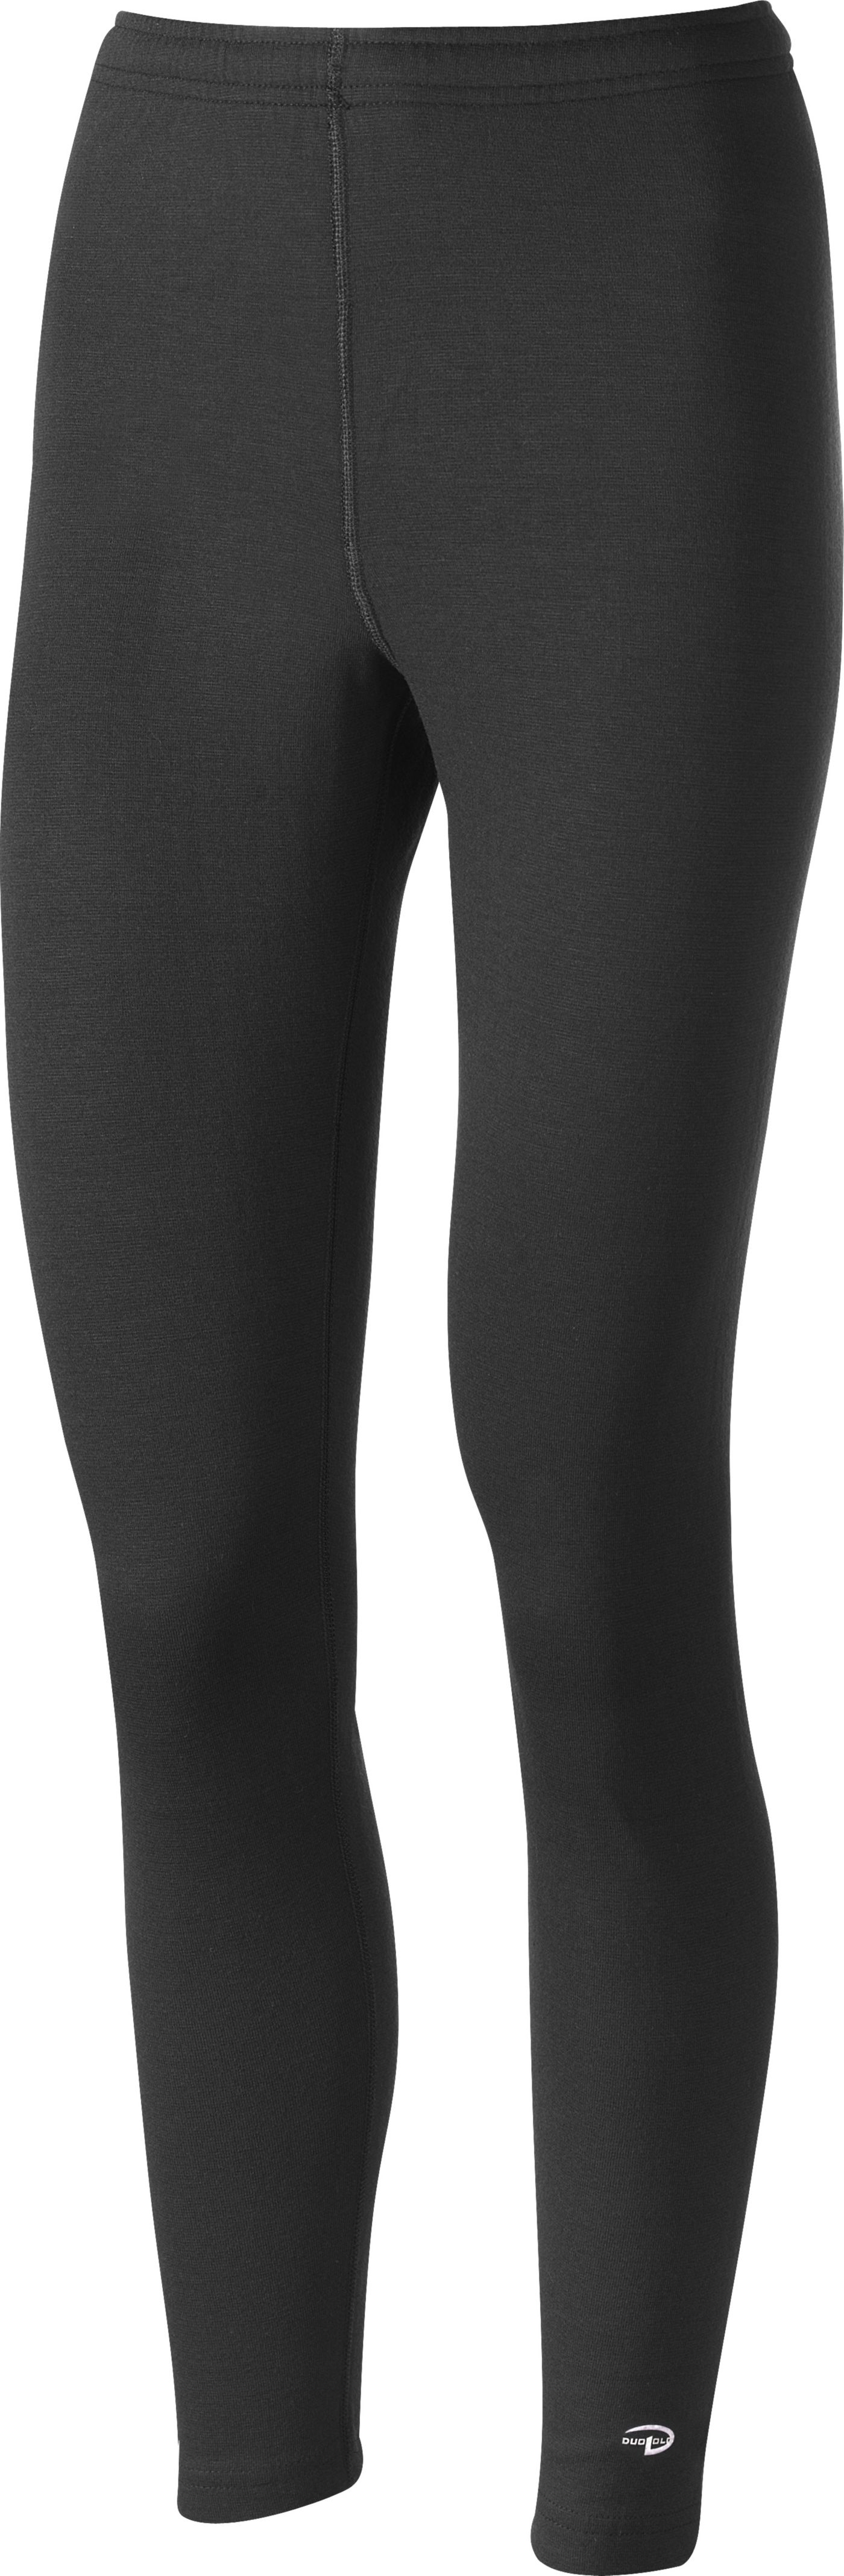 Duofold Women's Varitherm Expedition Pant